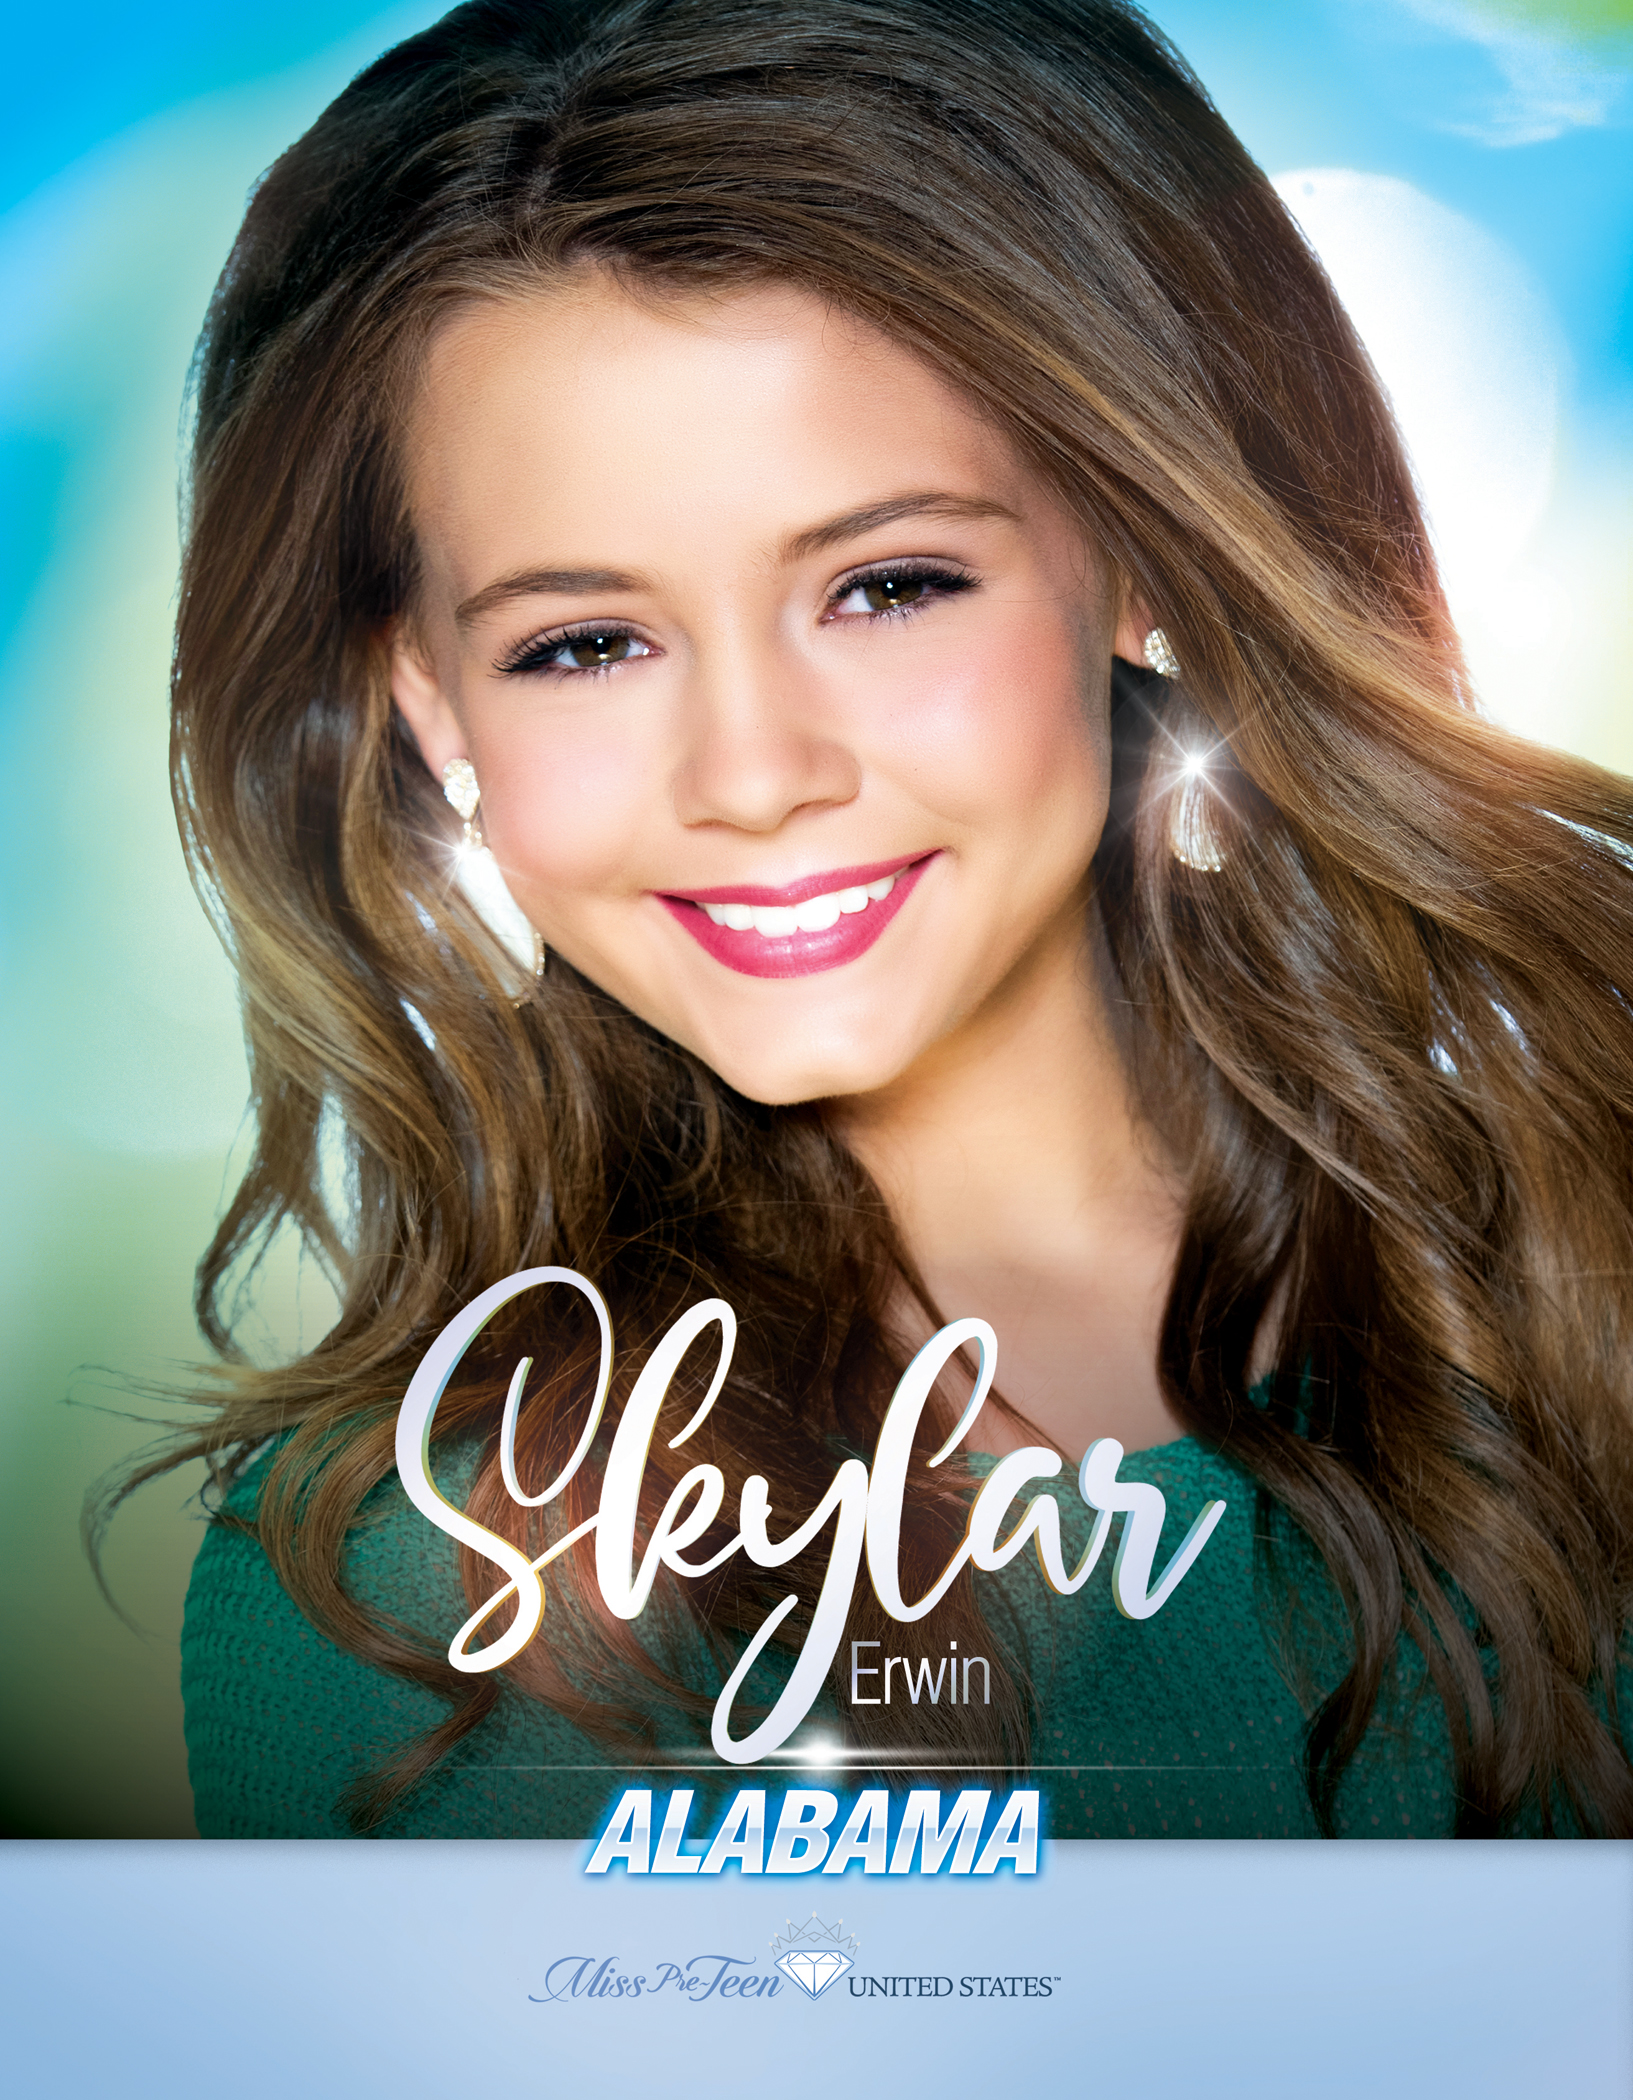 Skylar Erwin Miss Pre-Teen Alabama United States - 2019